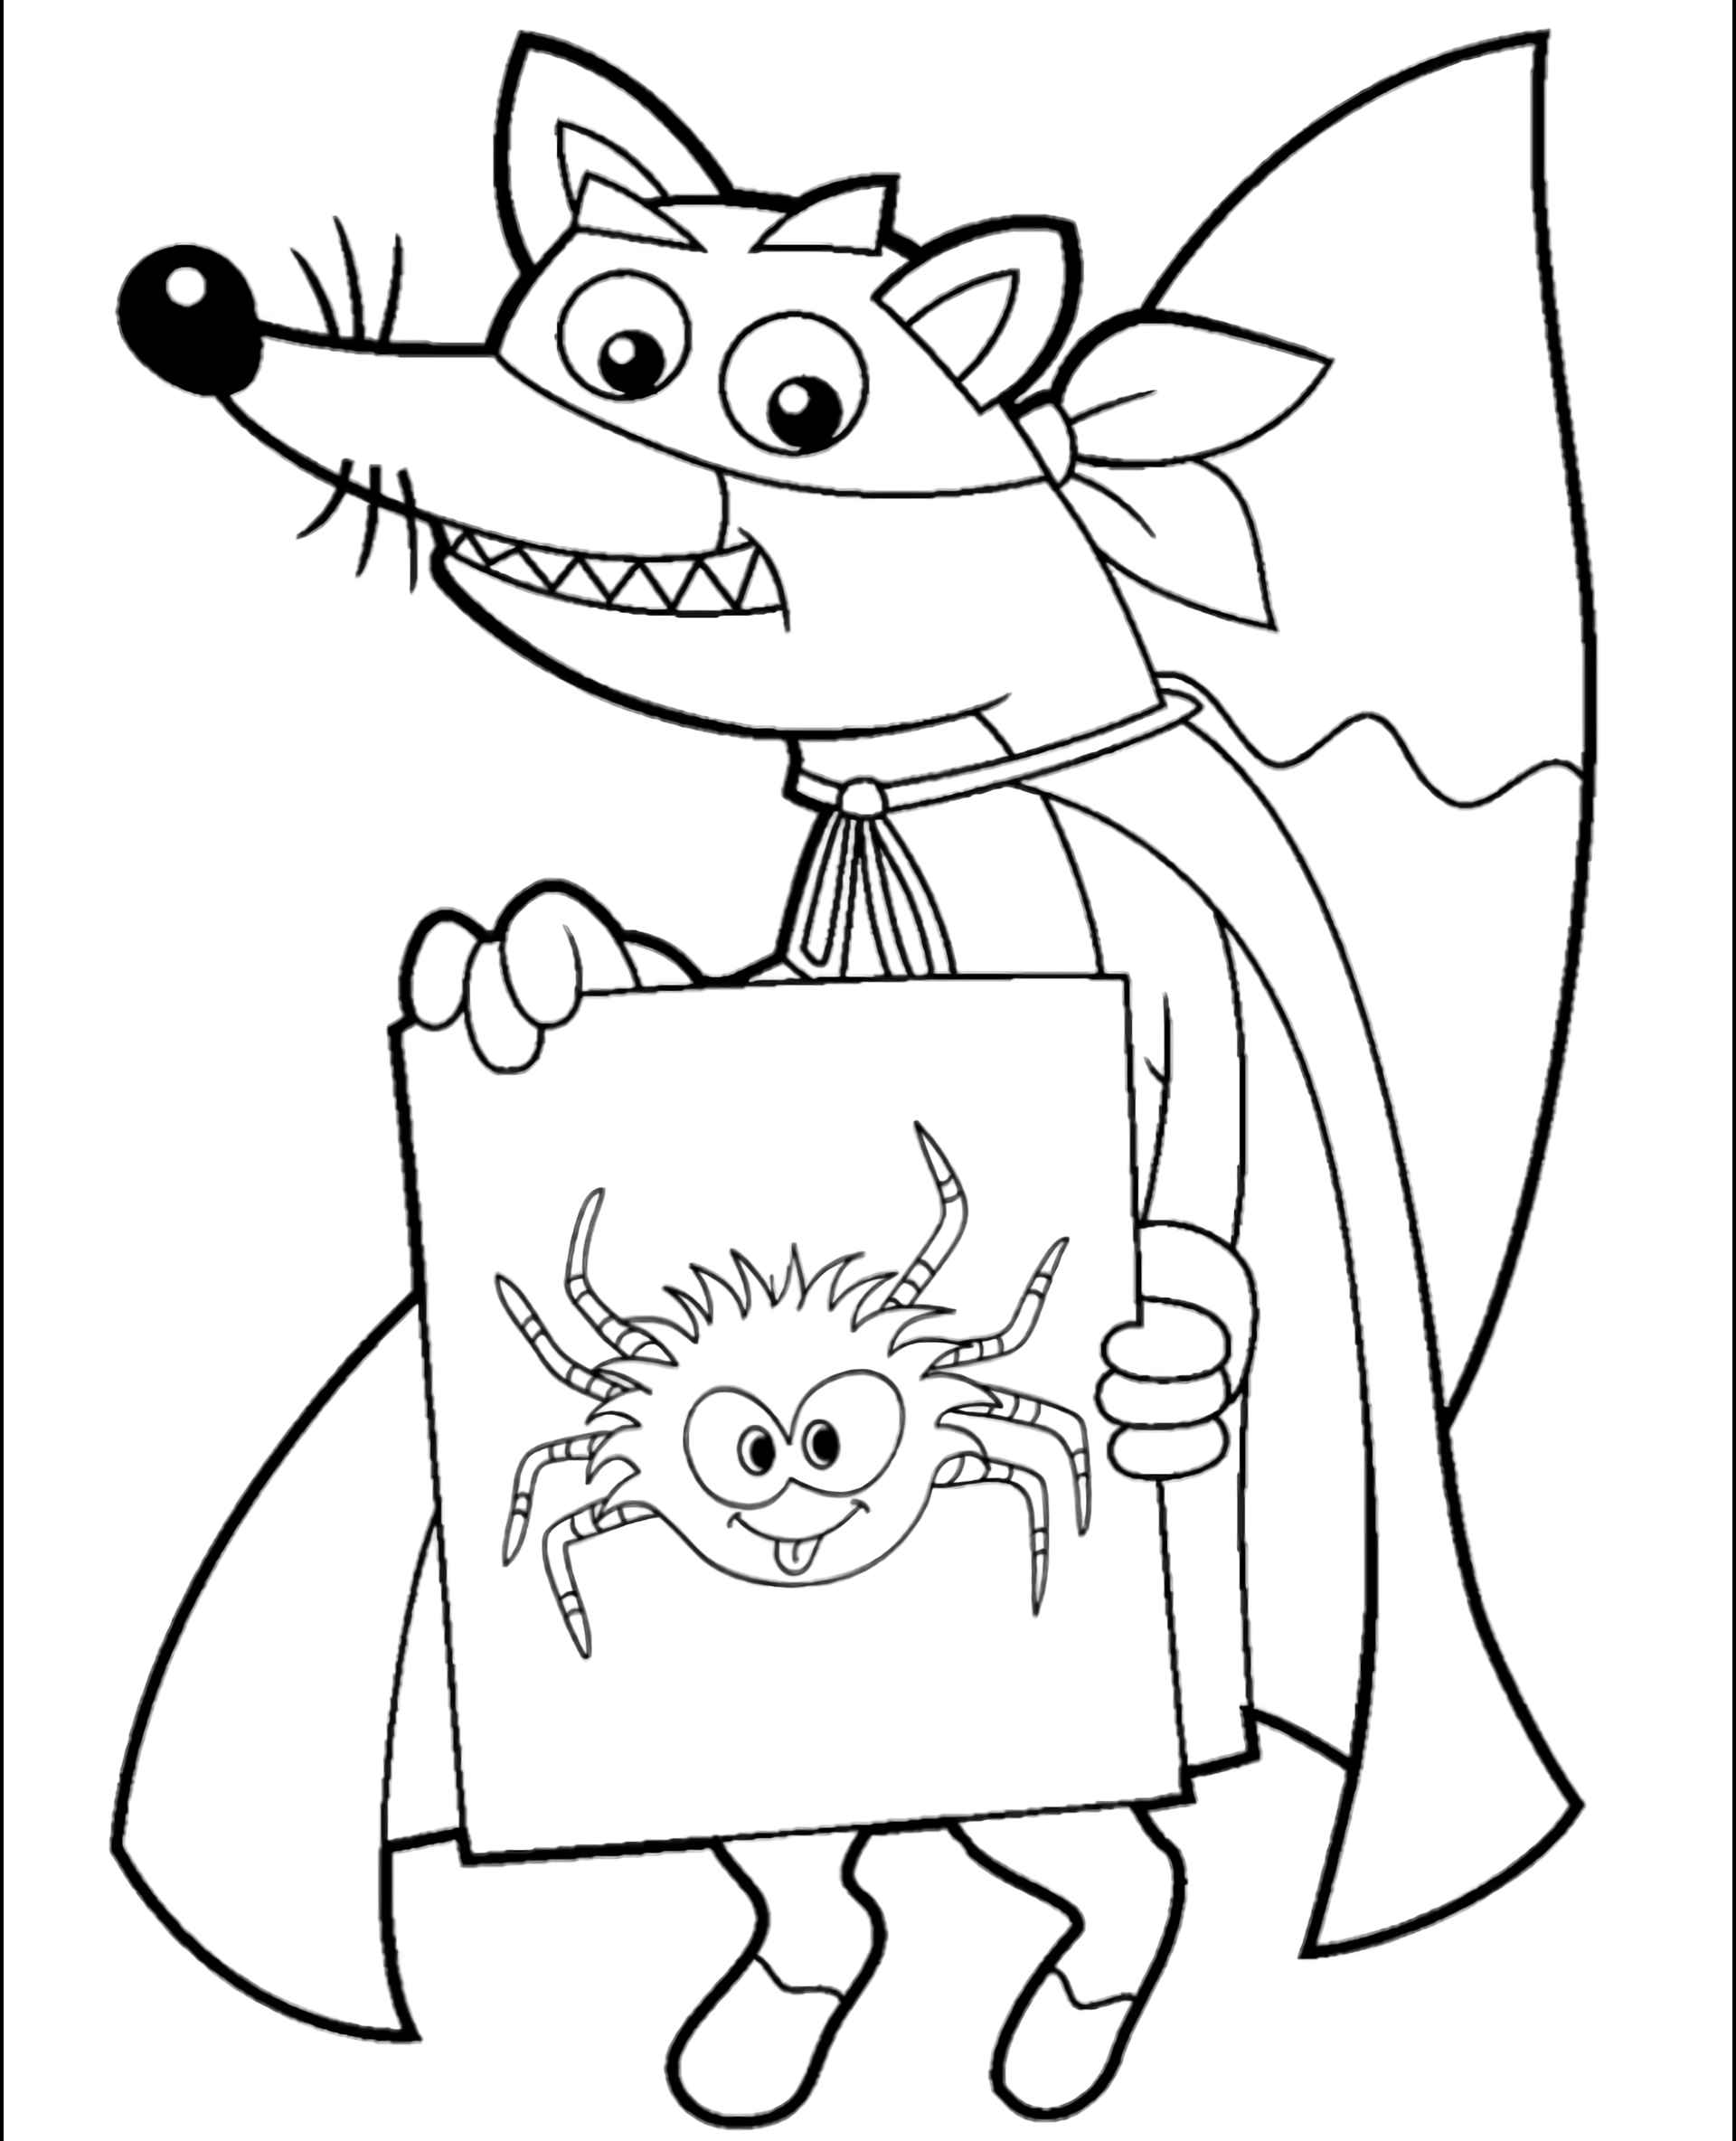 Fox Swiper Painted A Spider Coloring Page